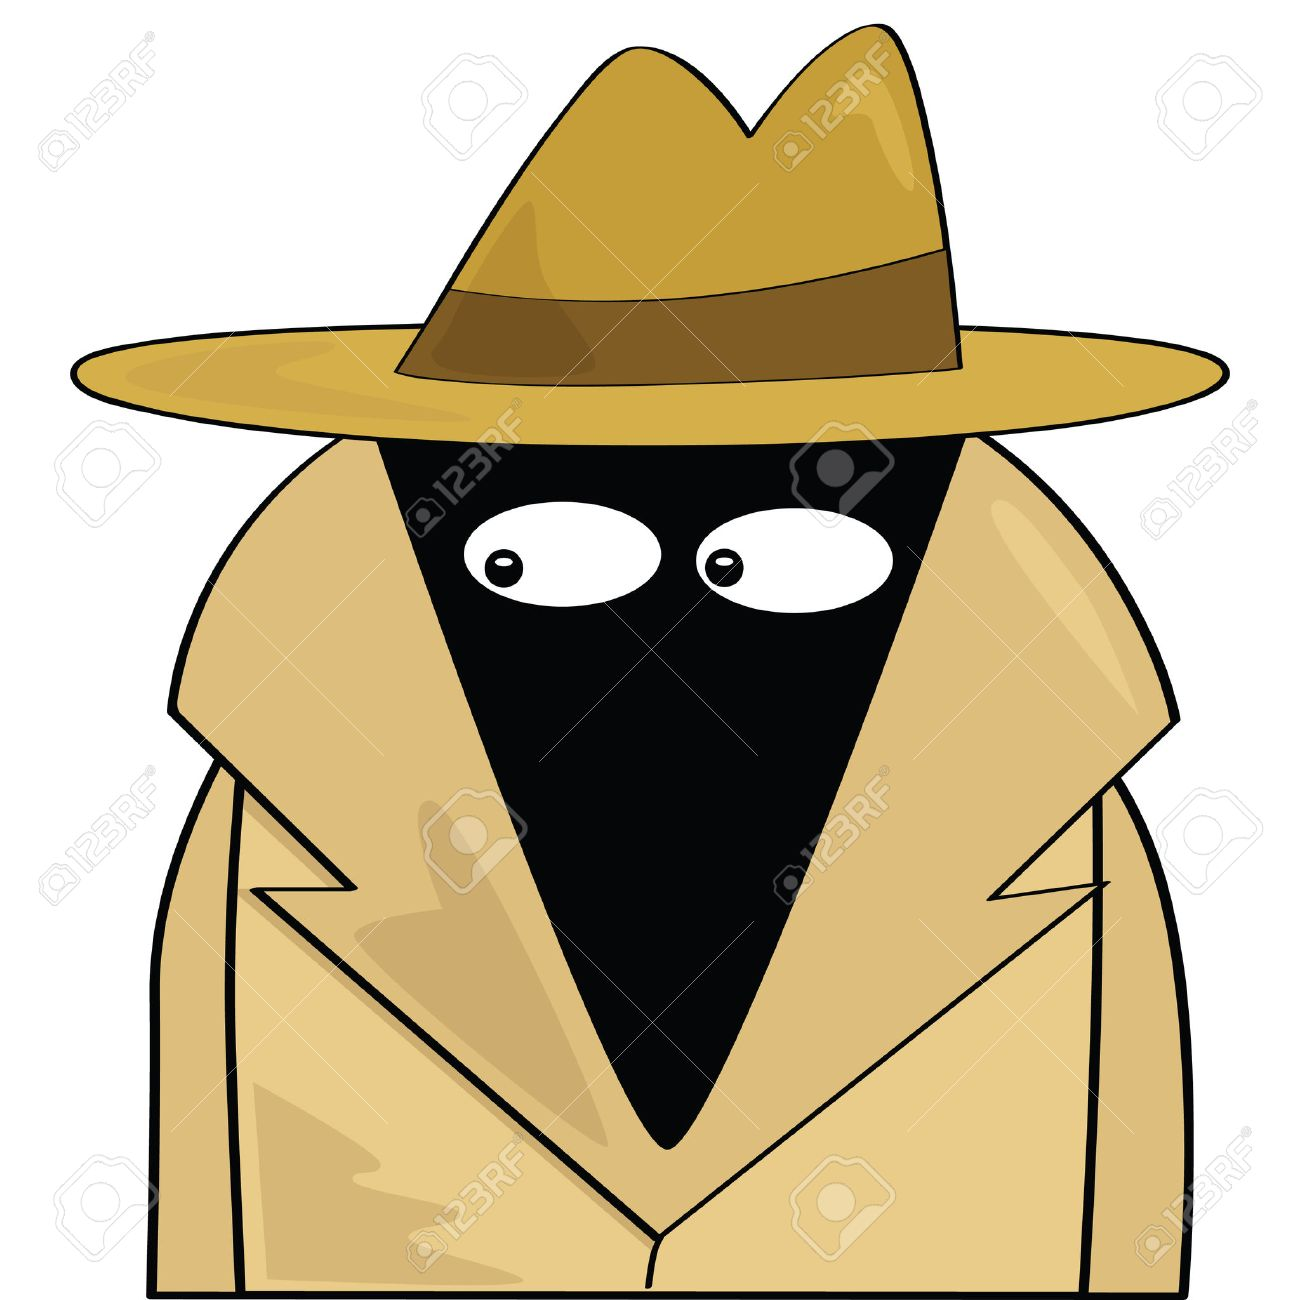 Cartoon illustration of a spy wearing a hat and trenchcoat Stock Vector - 7420063